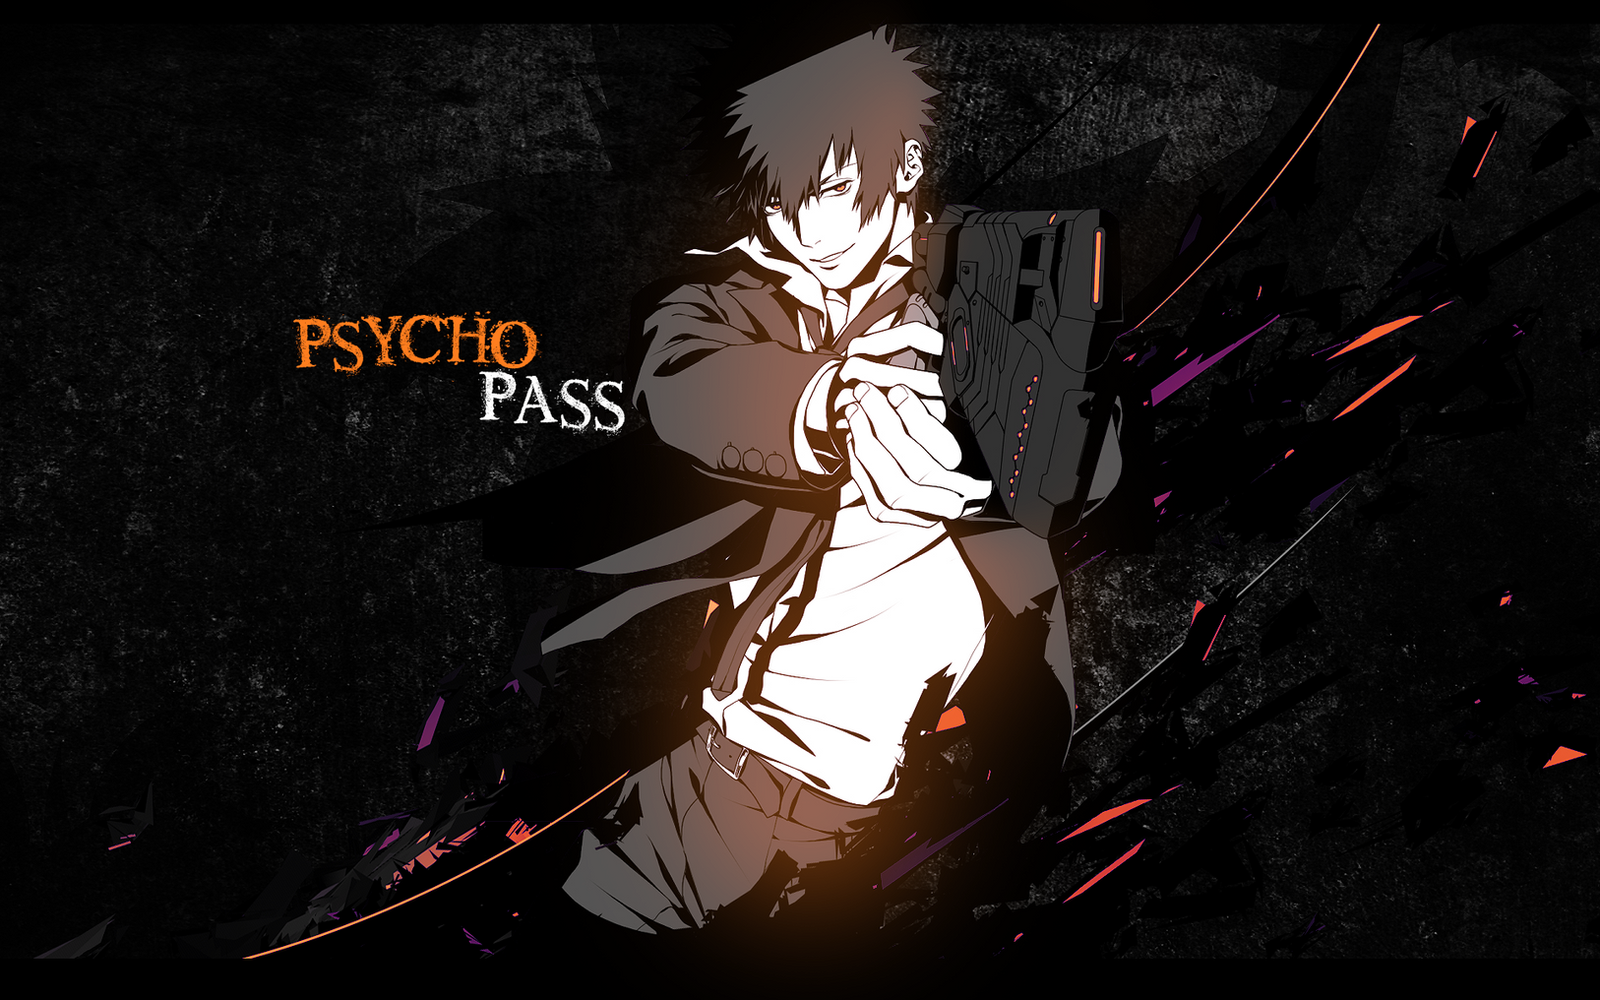 Psycho Pass WallPaper by Cyrux-gfx on DeviantArt